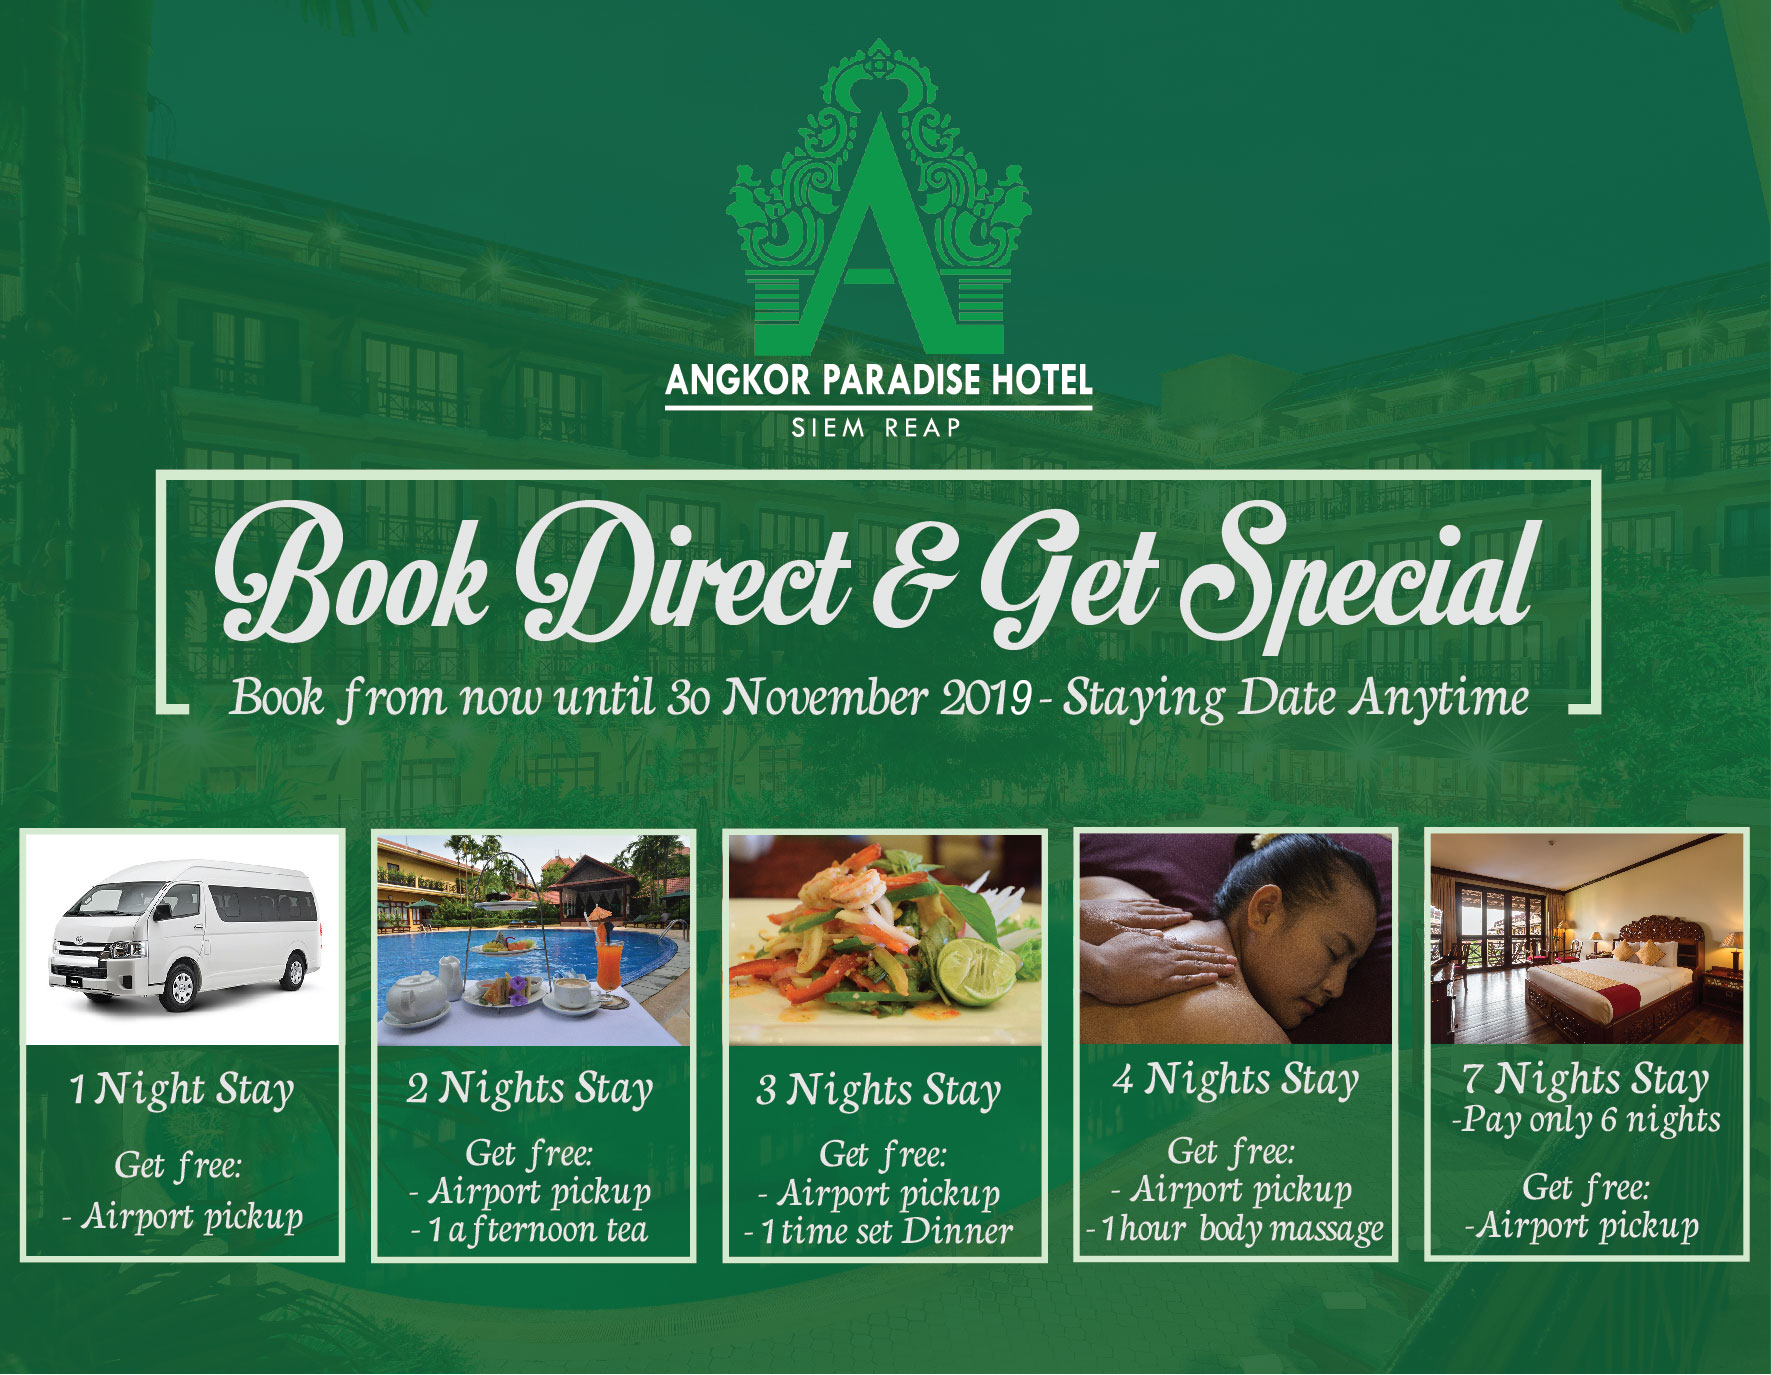 Angkor Paradise Hotel Siem Reap 5* accommodation